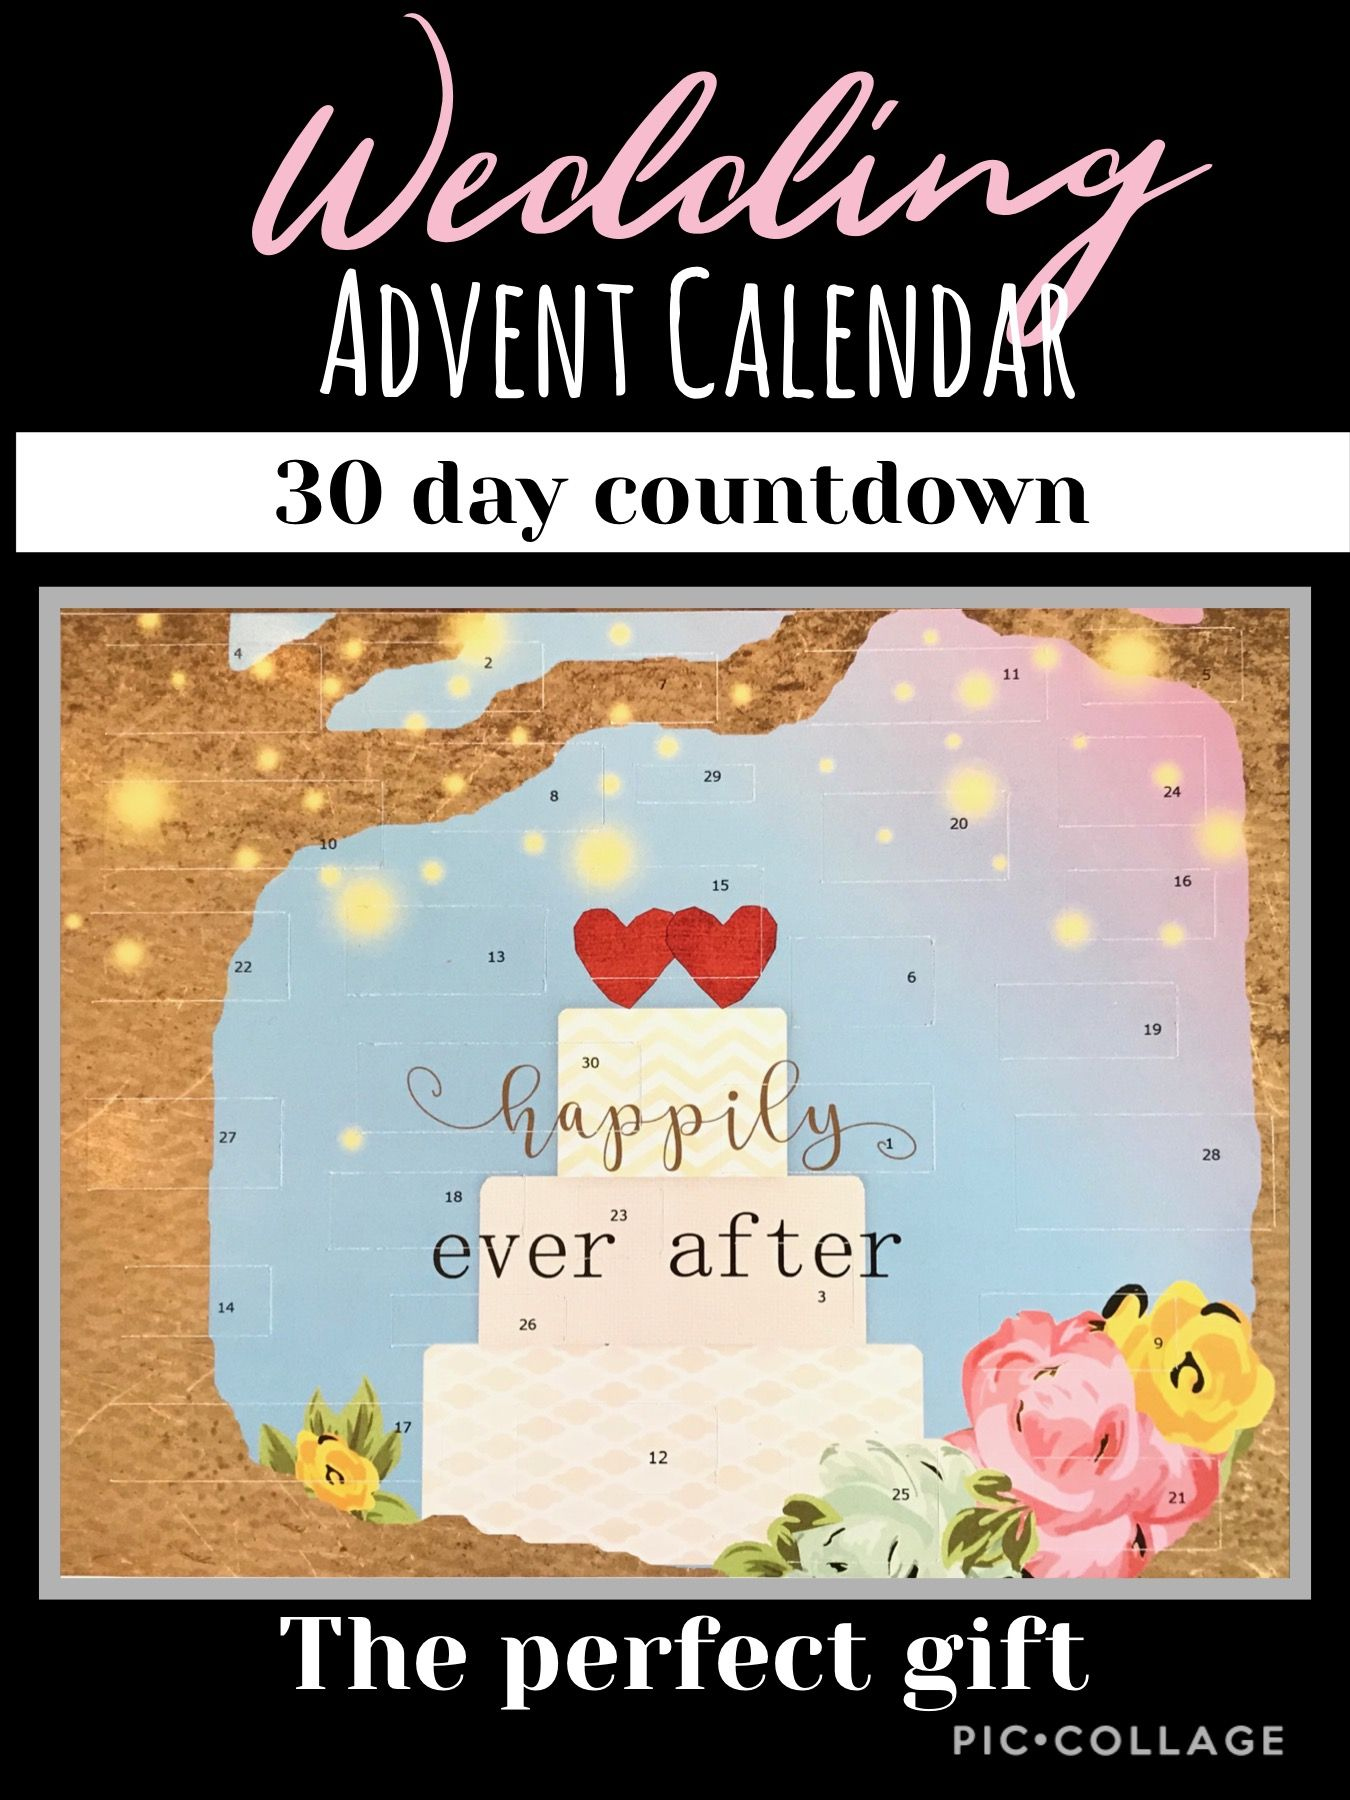 Countdown To Wedding Advent Calendar Engagement Bridal Etsy In 2020 Wedding Calendar Calendar Birthday Wishes